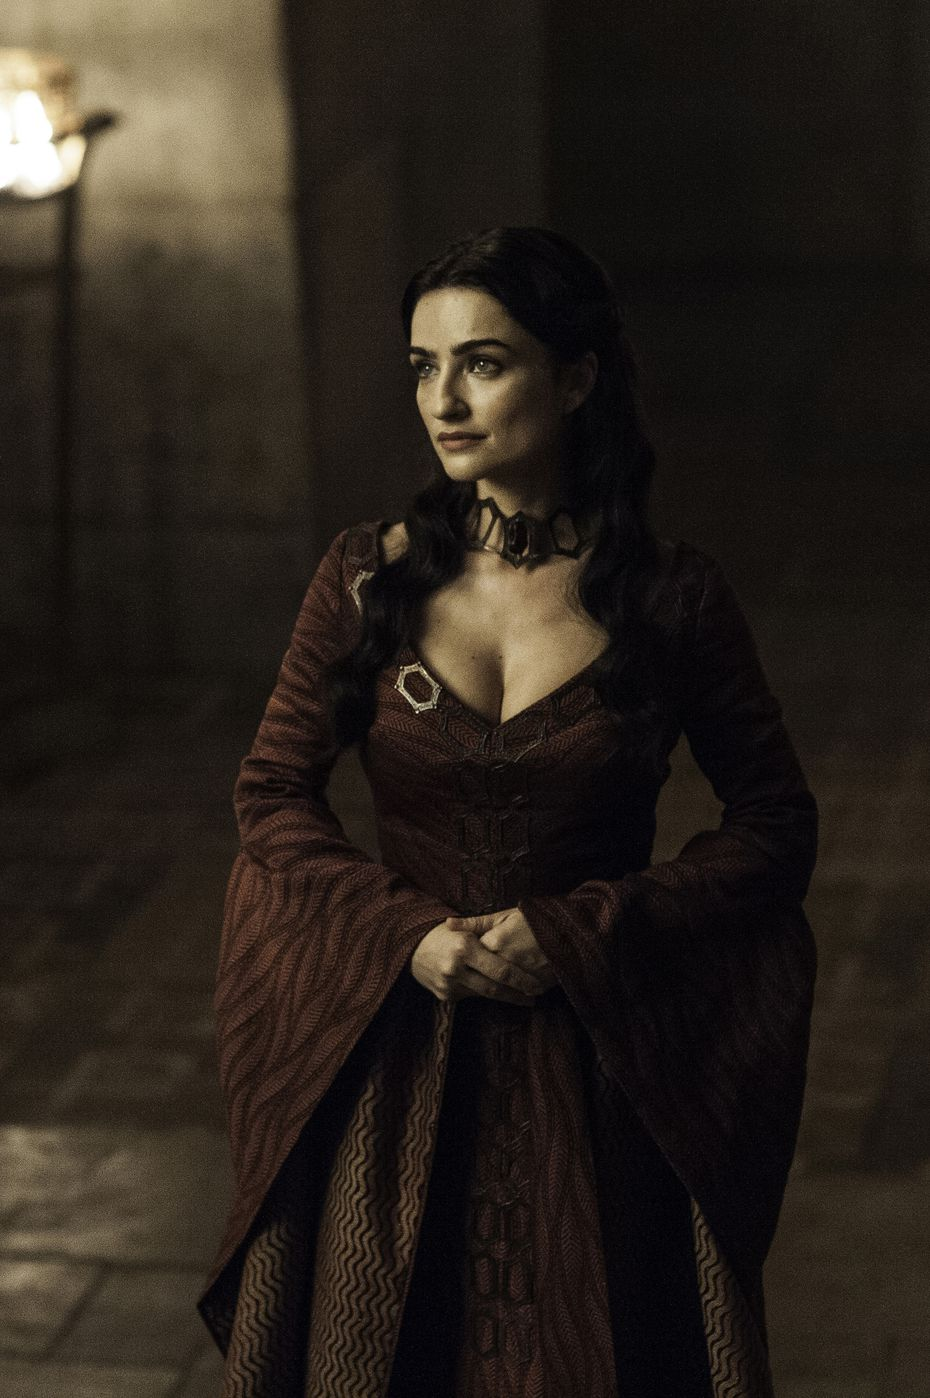 Kinvara gave off some serious Melisandre-of-old vibes, with her confidence and mannerisms.